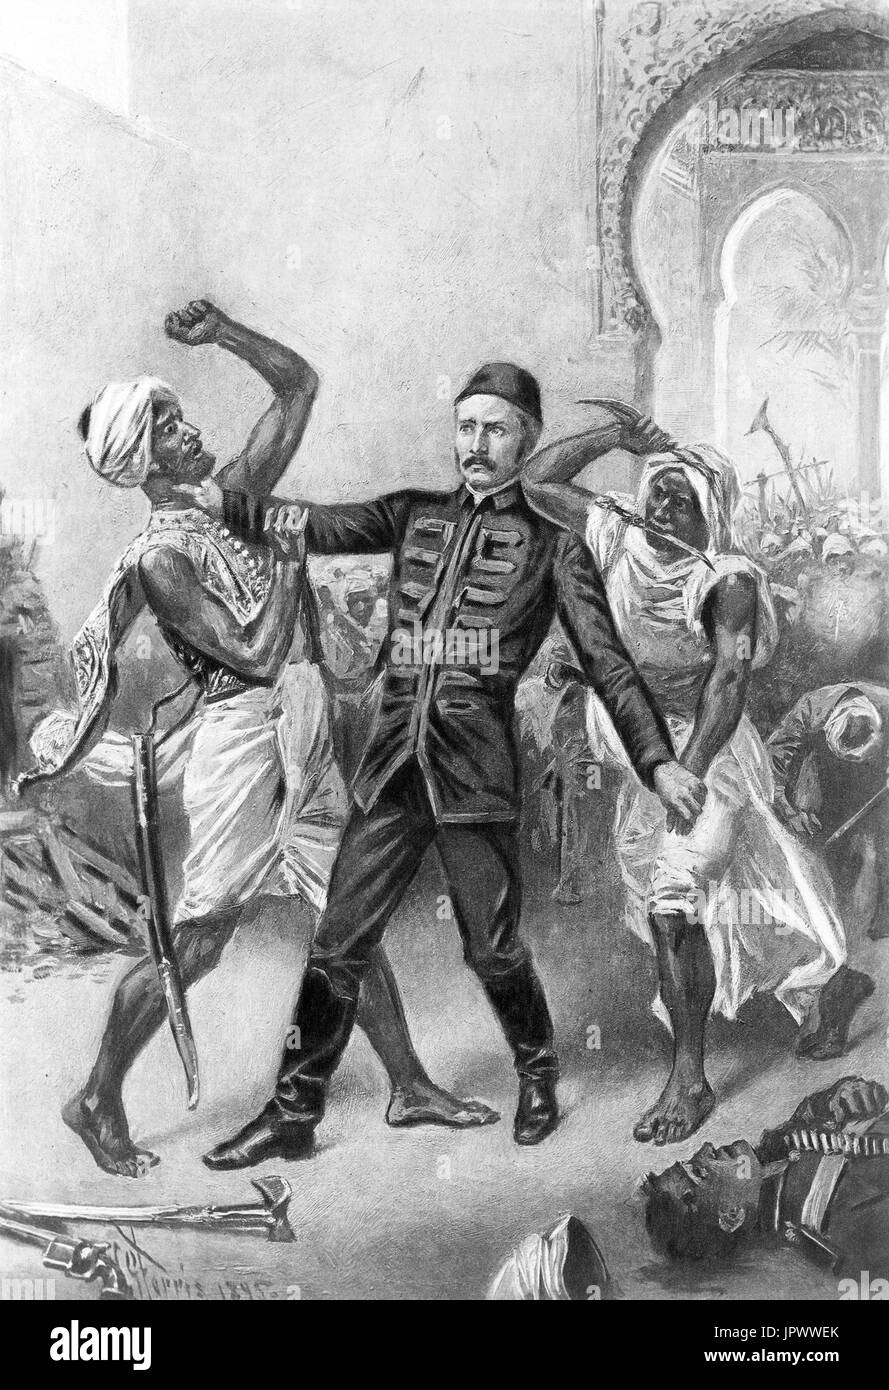 CHARLES GEORGE GORDON (1833-1885) British Army officer. Illustration of his death in Khartoum by American artist Jean Ferris - Stock Image